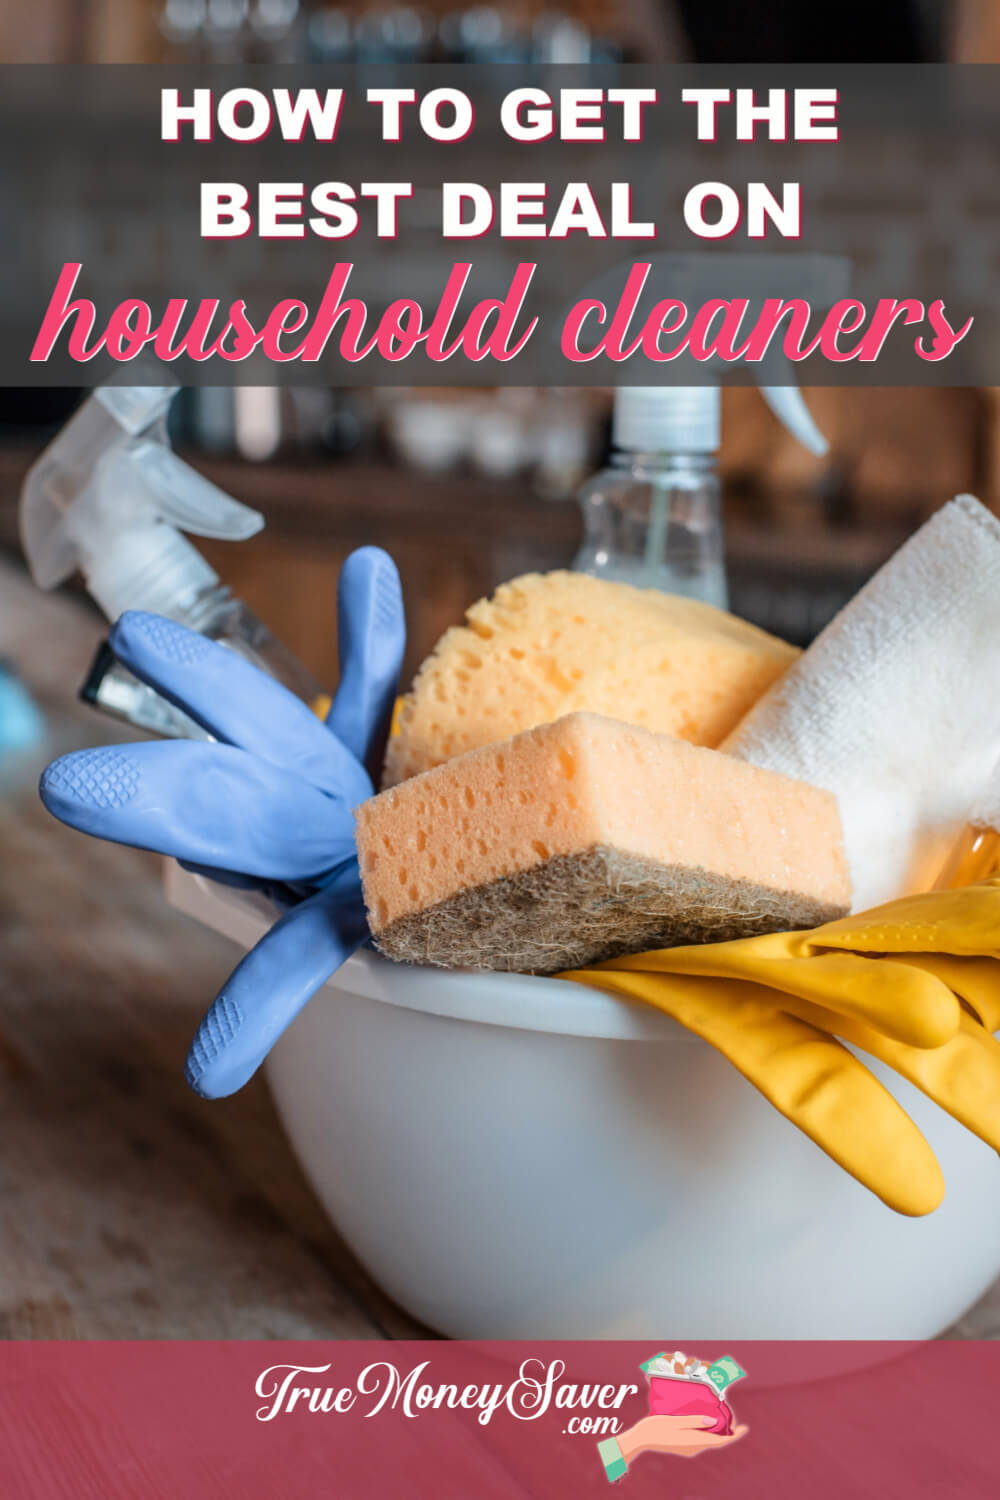 How To Get The Best Deal On Your Household Cleaners Without Coupons